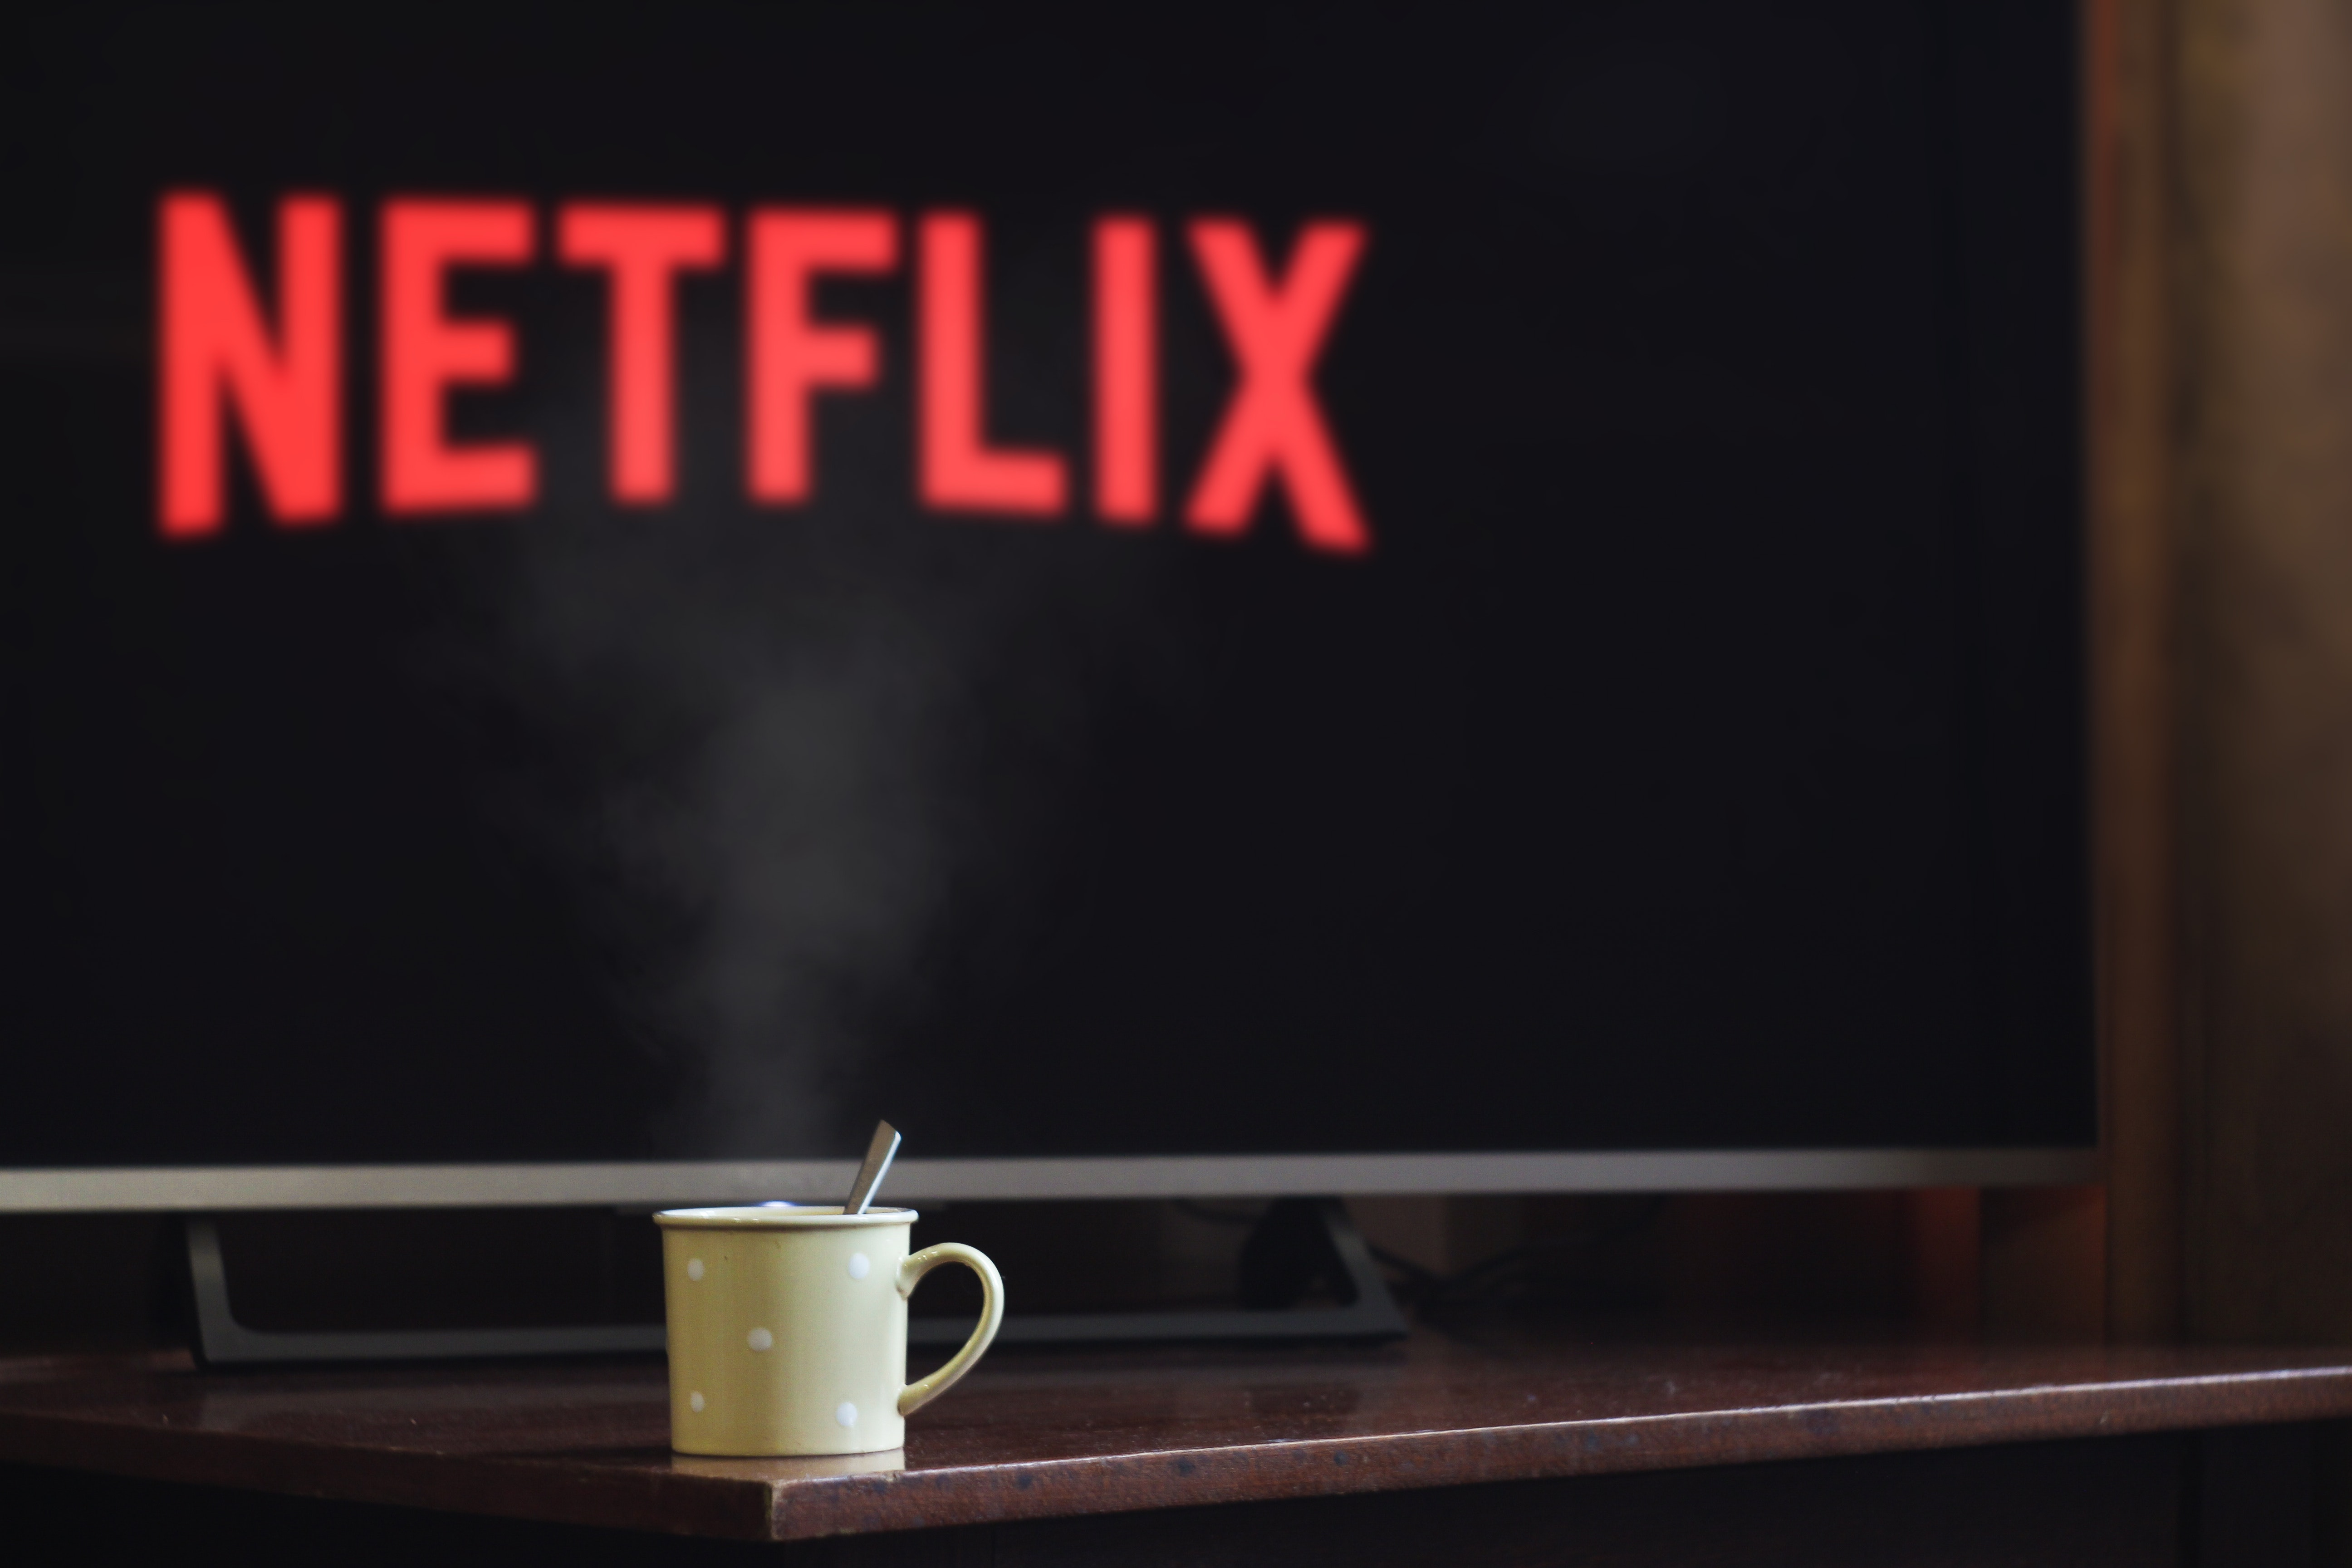 In front of a tv with netflix flashed on the screen is a cup of coffee